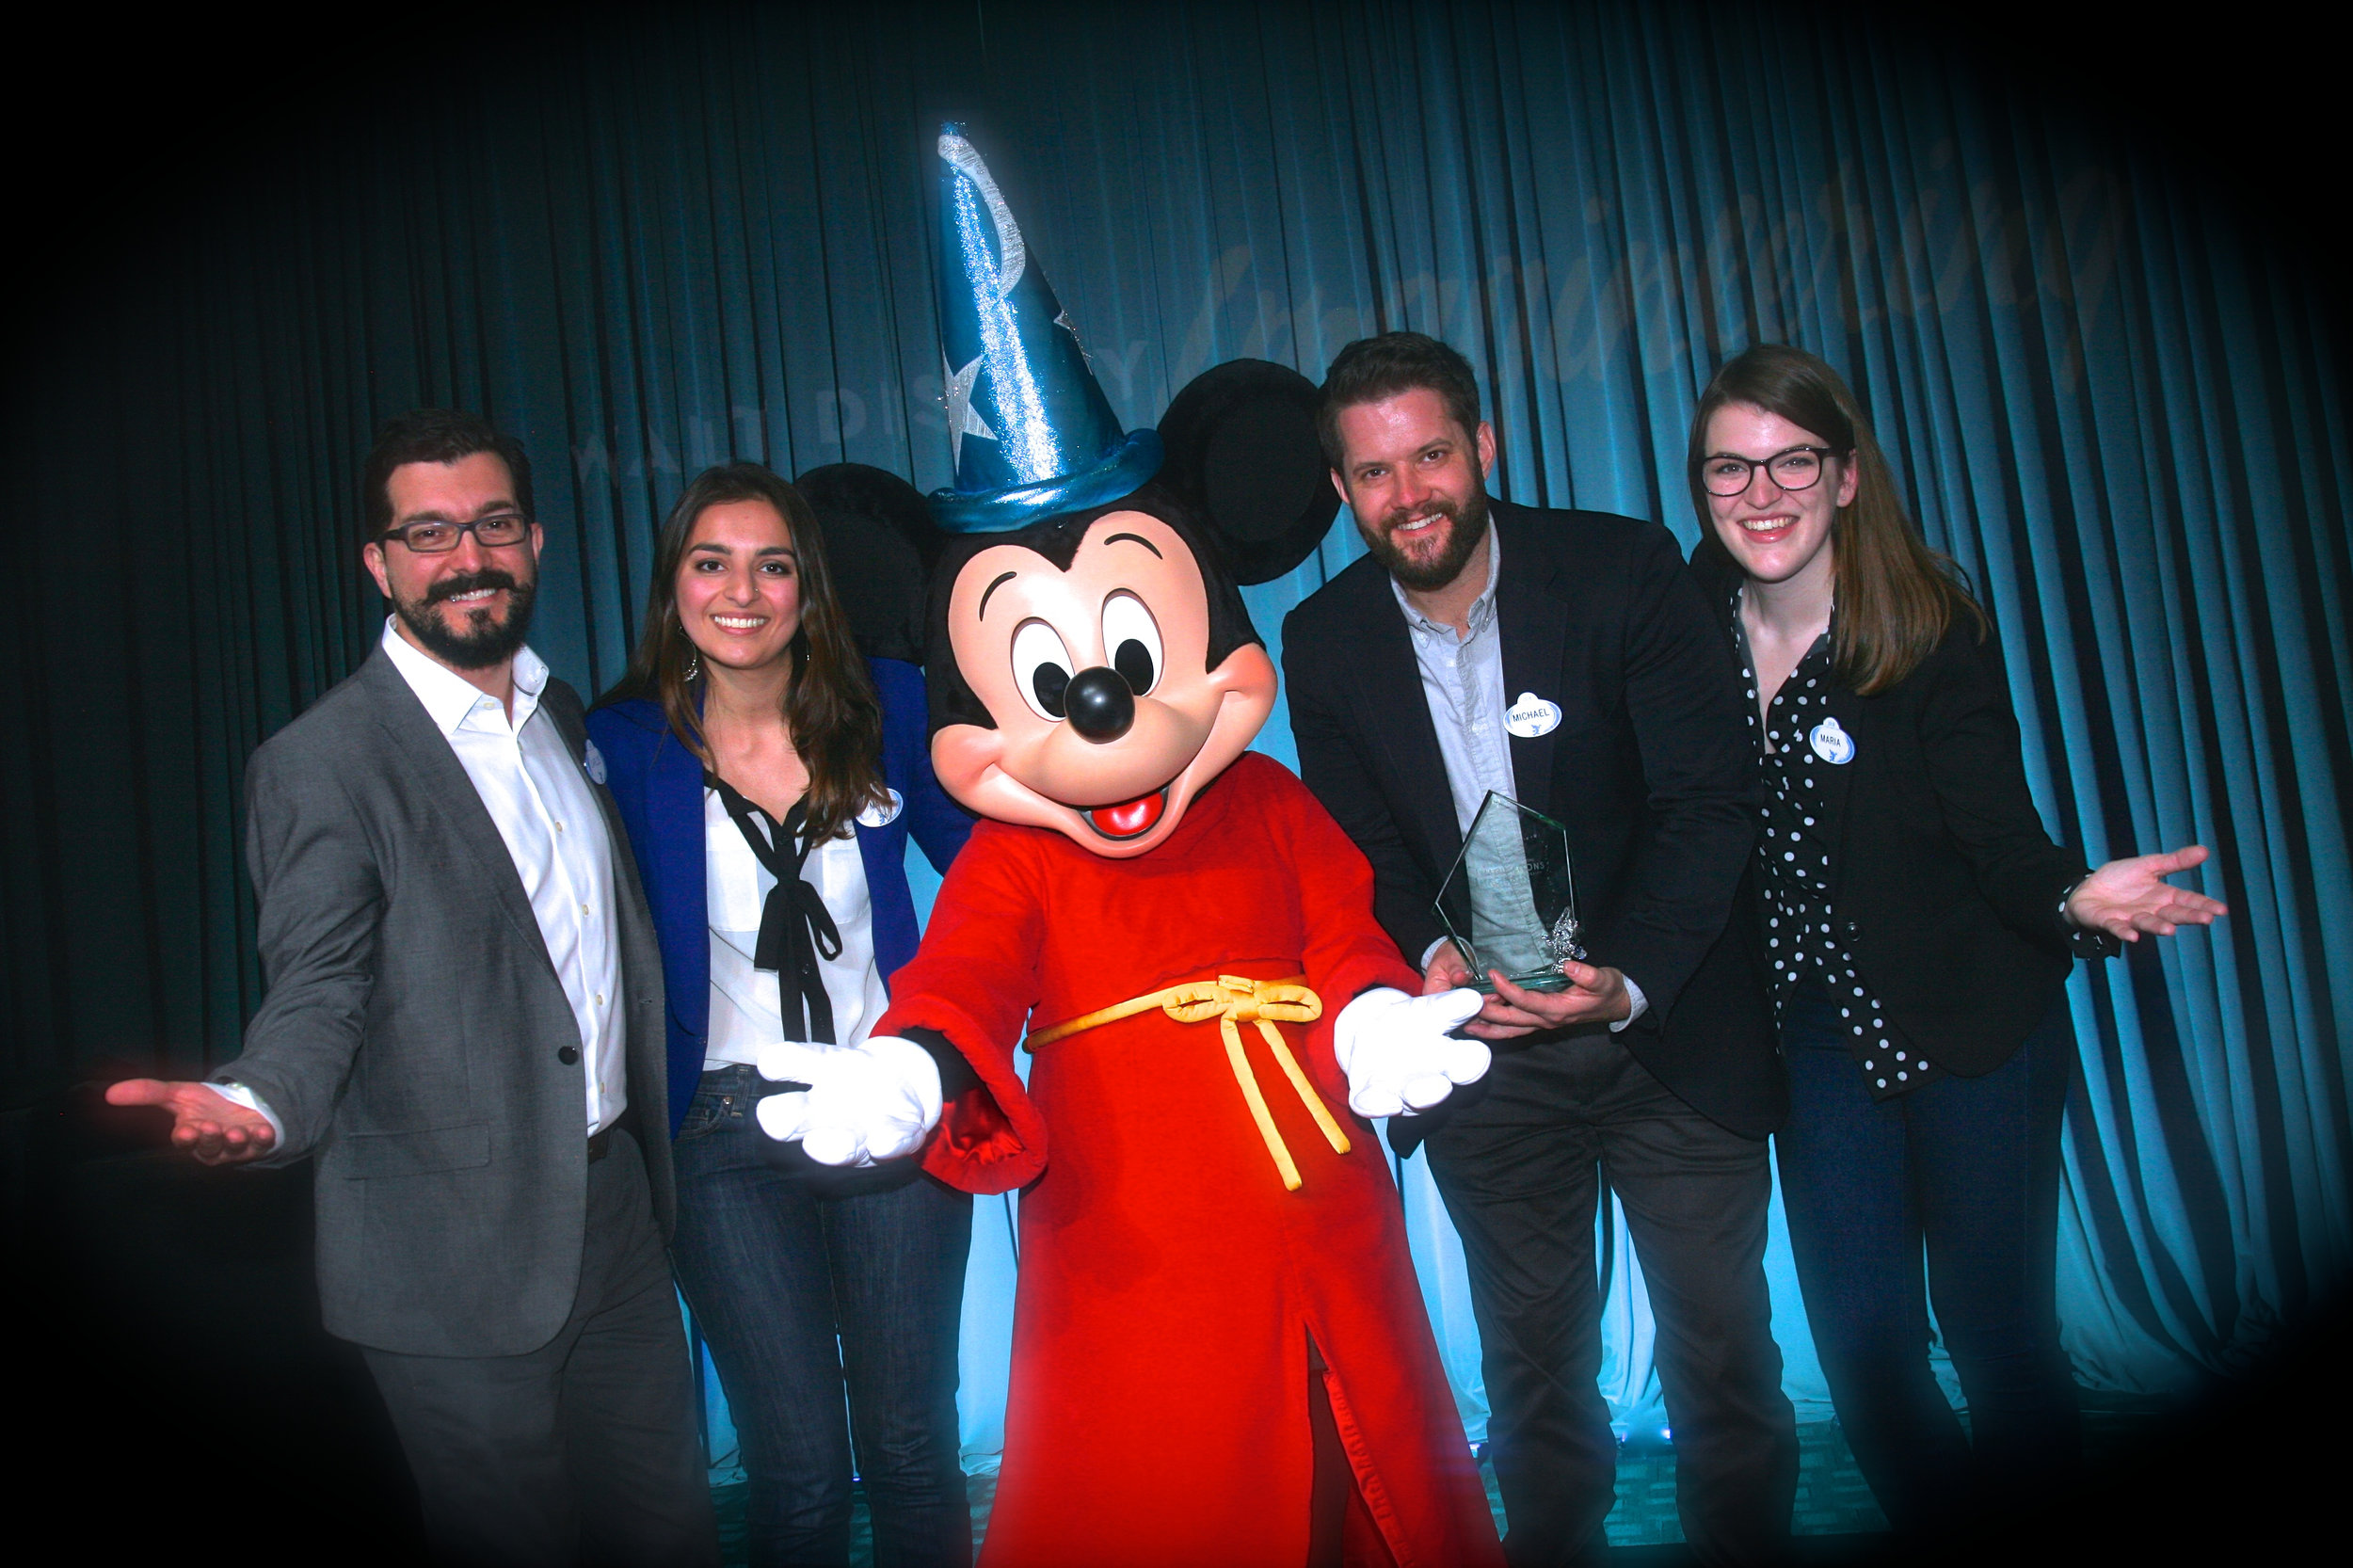 Team Caguaya takes first place at the 2018 Imaginations Competition! From Left: Carlos Ginatta, Maya Vyas, Mickey Mouse, Michael Howell, Maria Mondloch. Image courtesy of The Walt Disney Company.